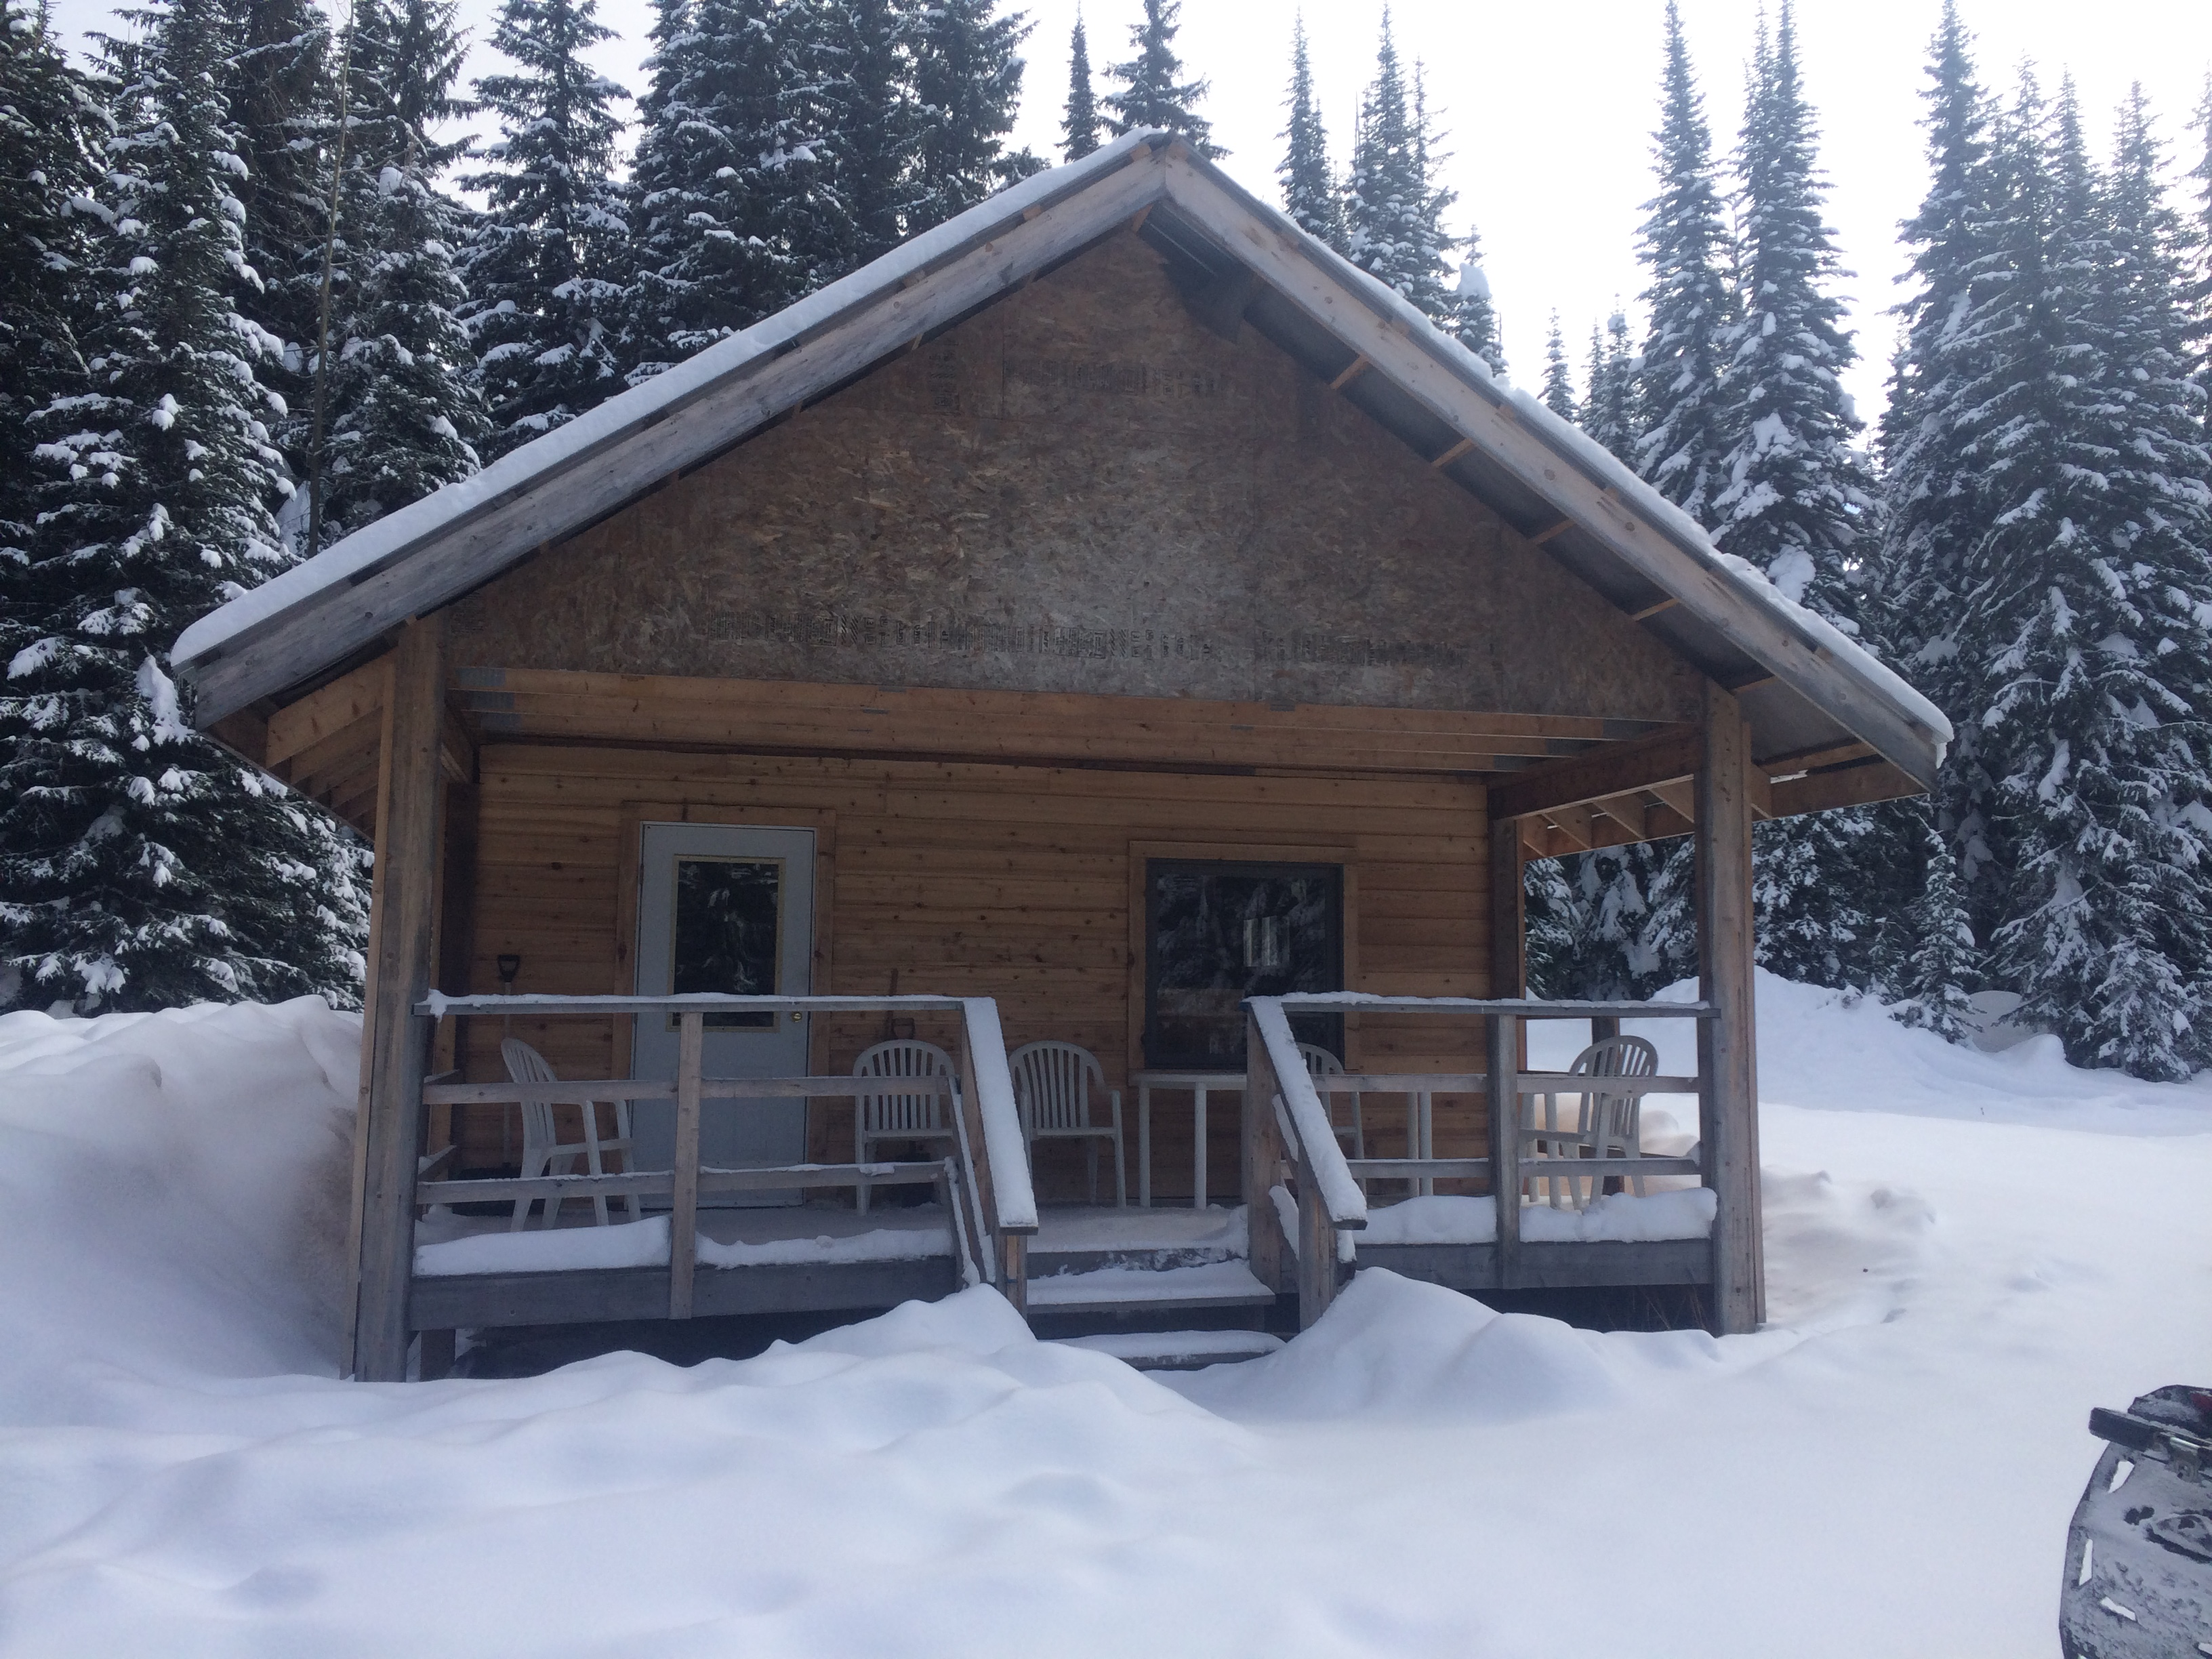 Armstrong Chalet